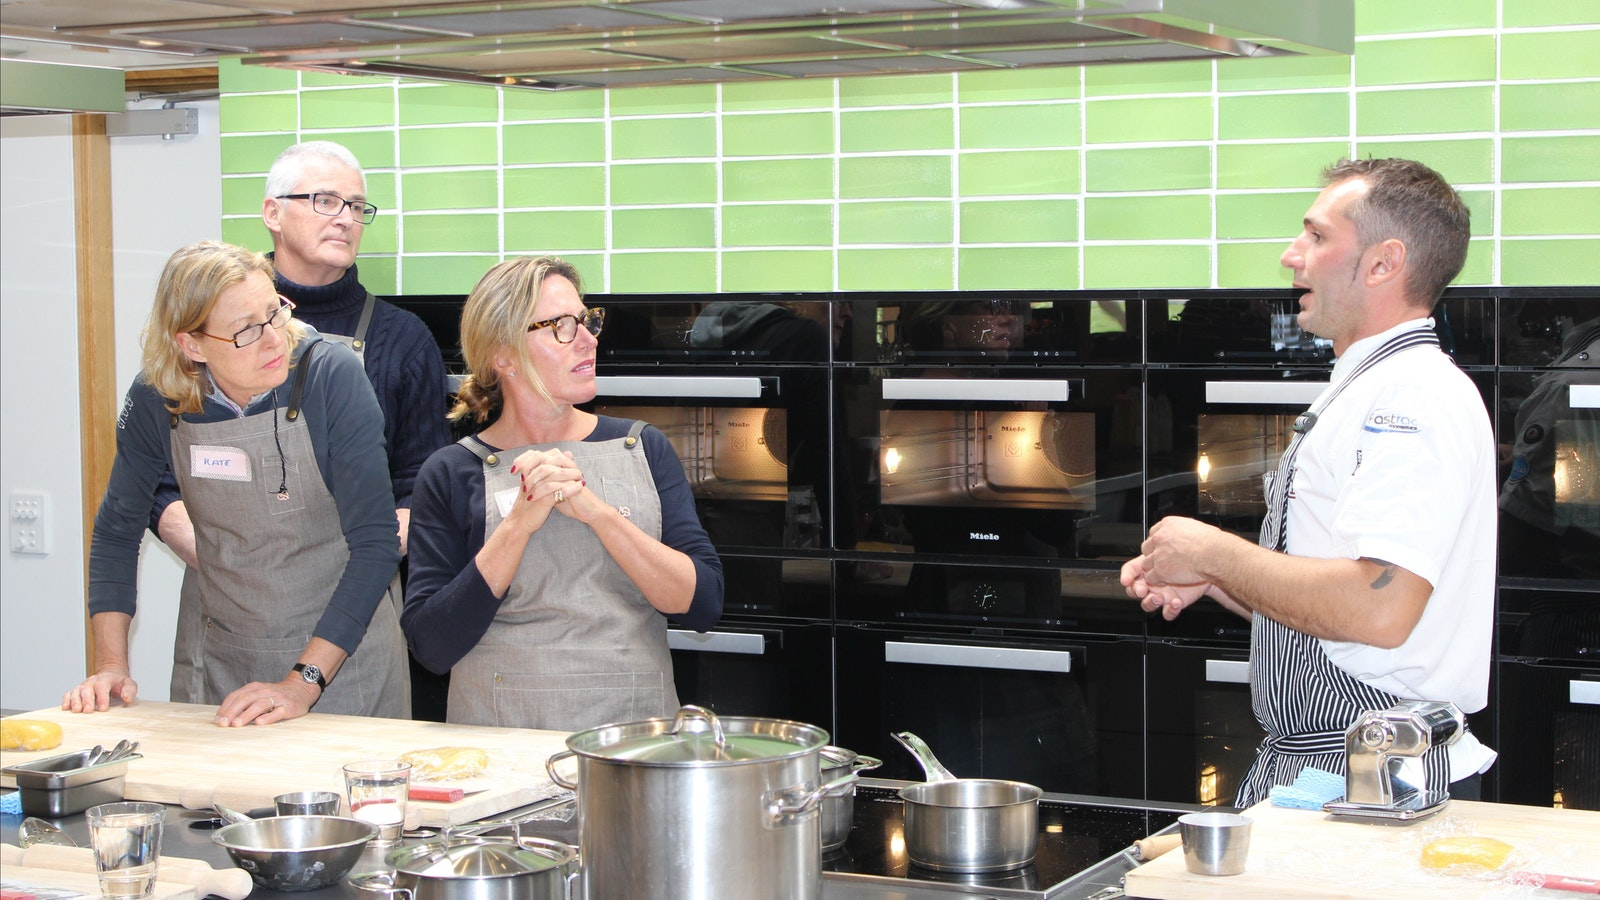 Award winning chefs offering a variety of classes